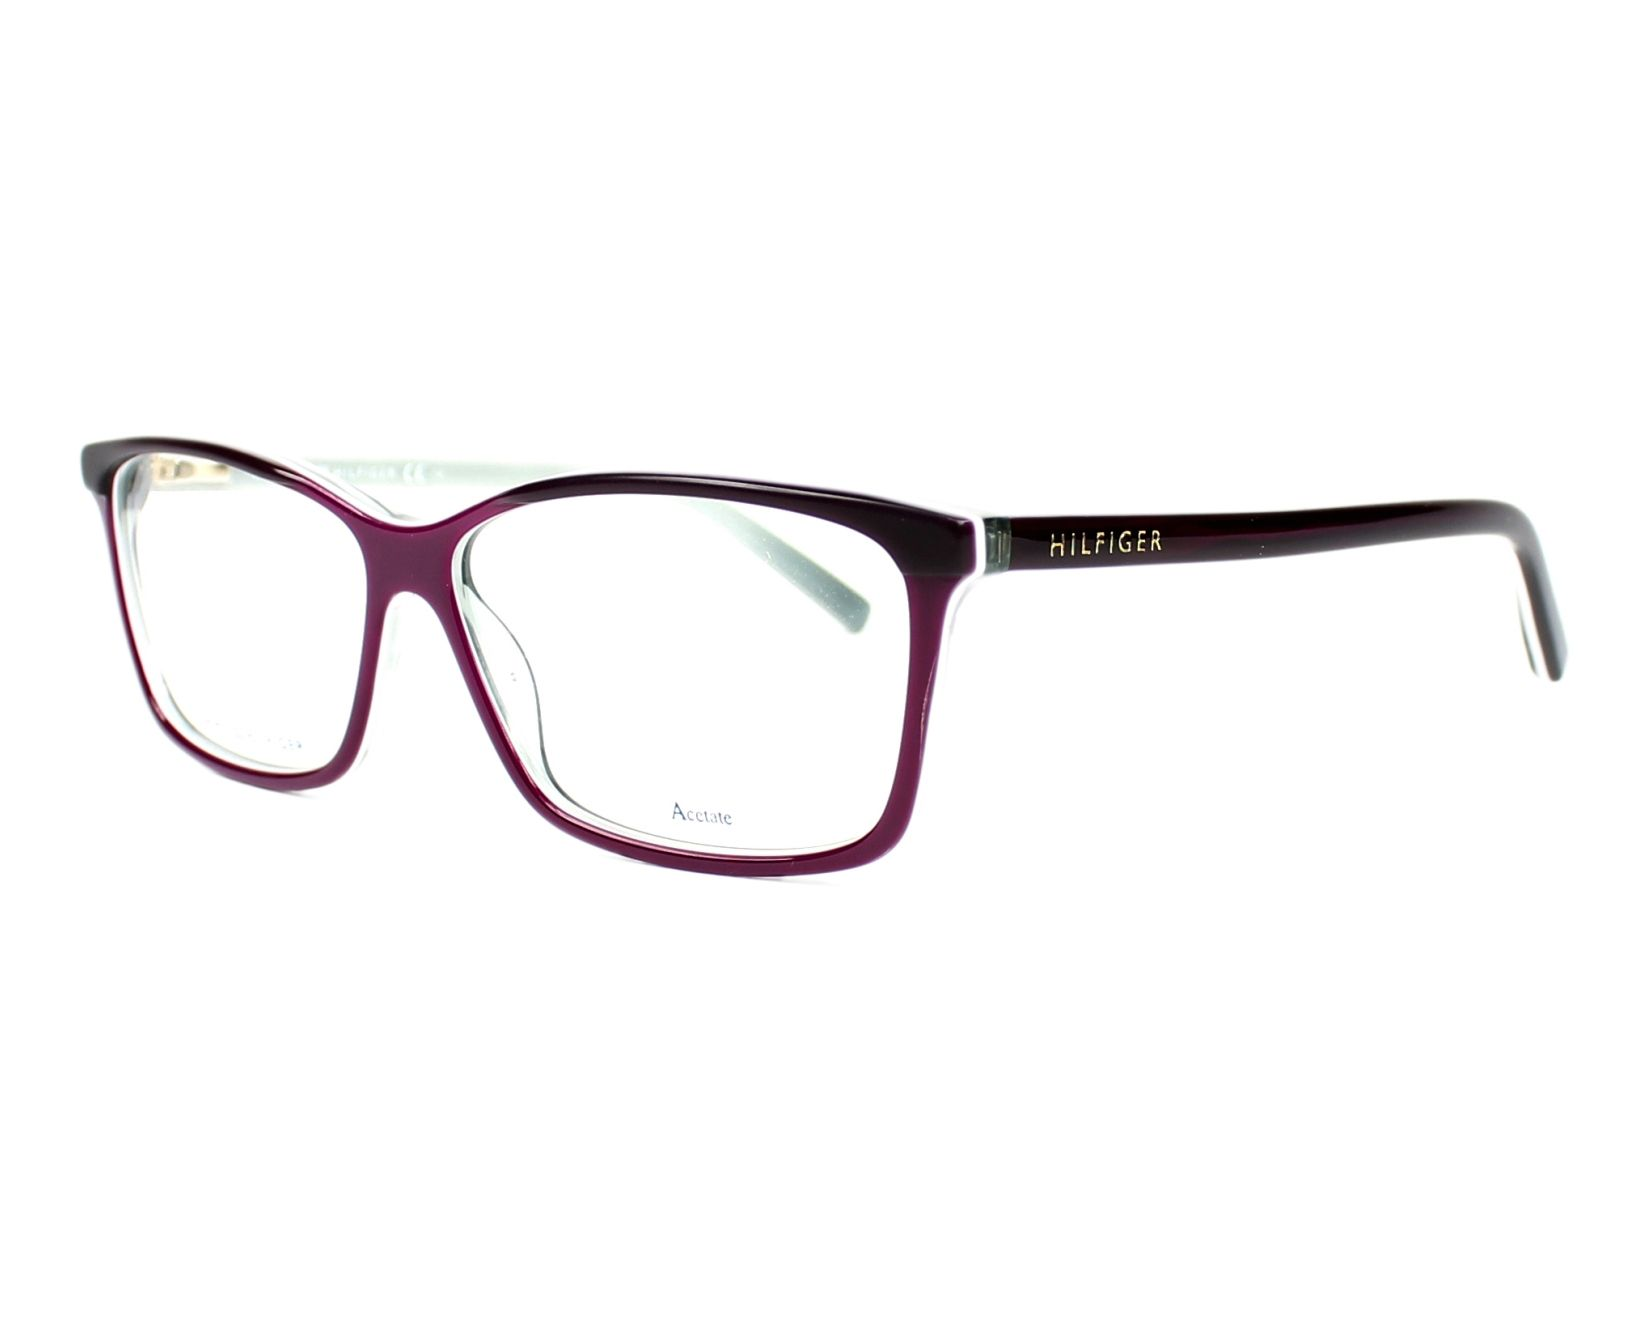 Buy Tommy Hilfiger Eyeglasses Th 1123 4t3 Online Visionet